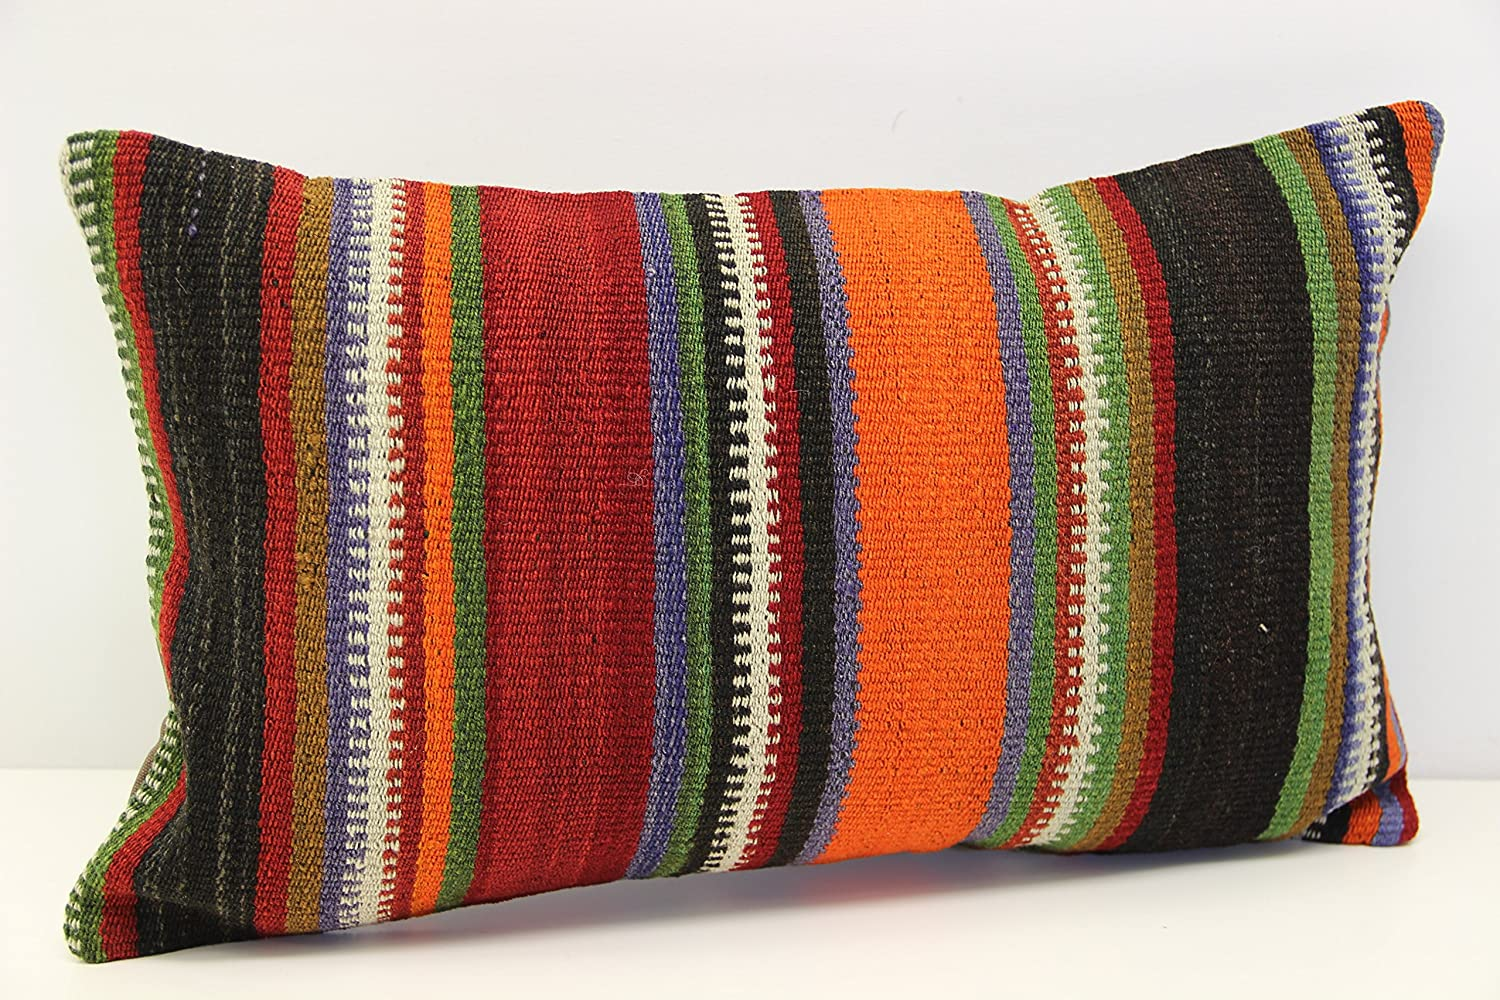 Max 46% OFF Ethnic kilim pillow cover 12x20 Armchair cm Baltimore Mall Pillow 30x50 inch